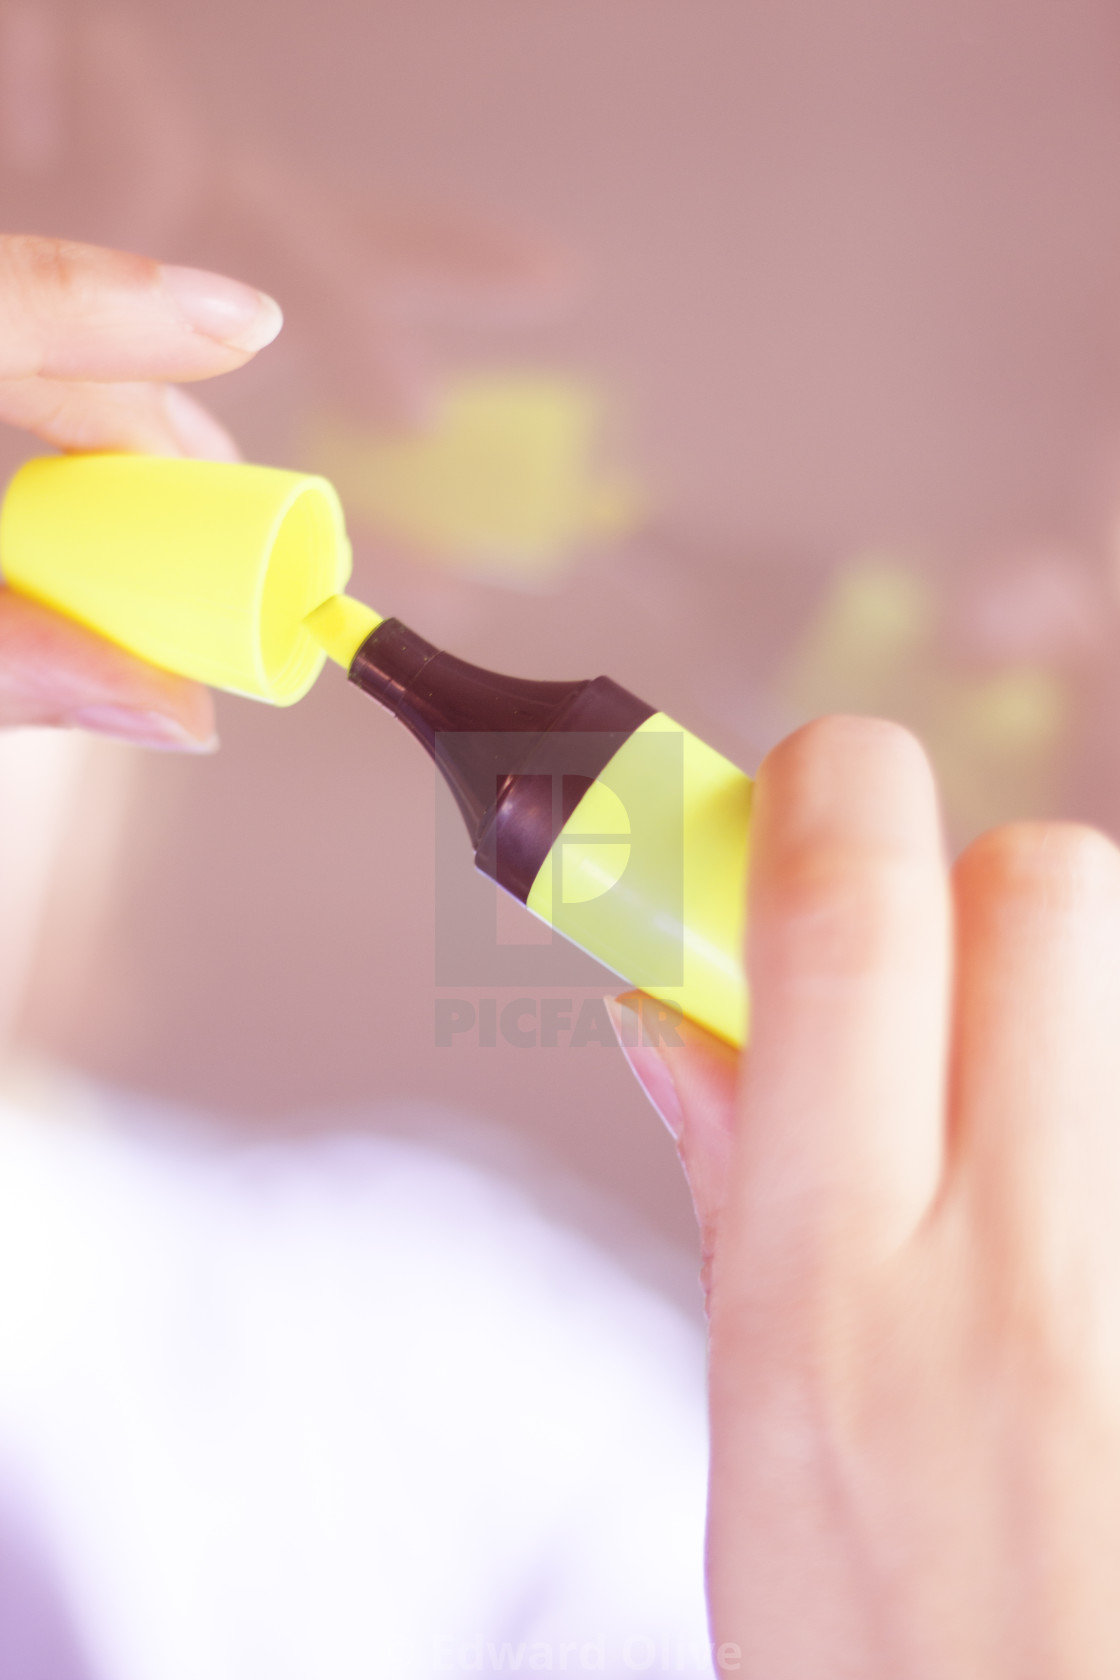 Felt Tip Marker Highlighter Pen License Download Or Print